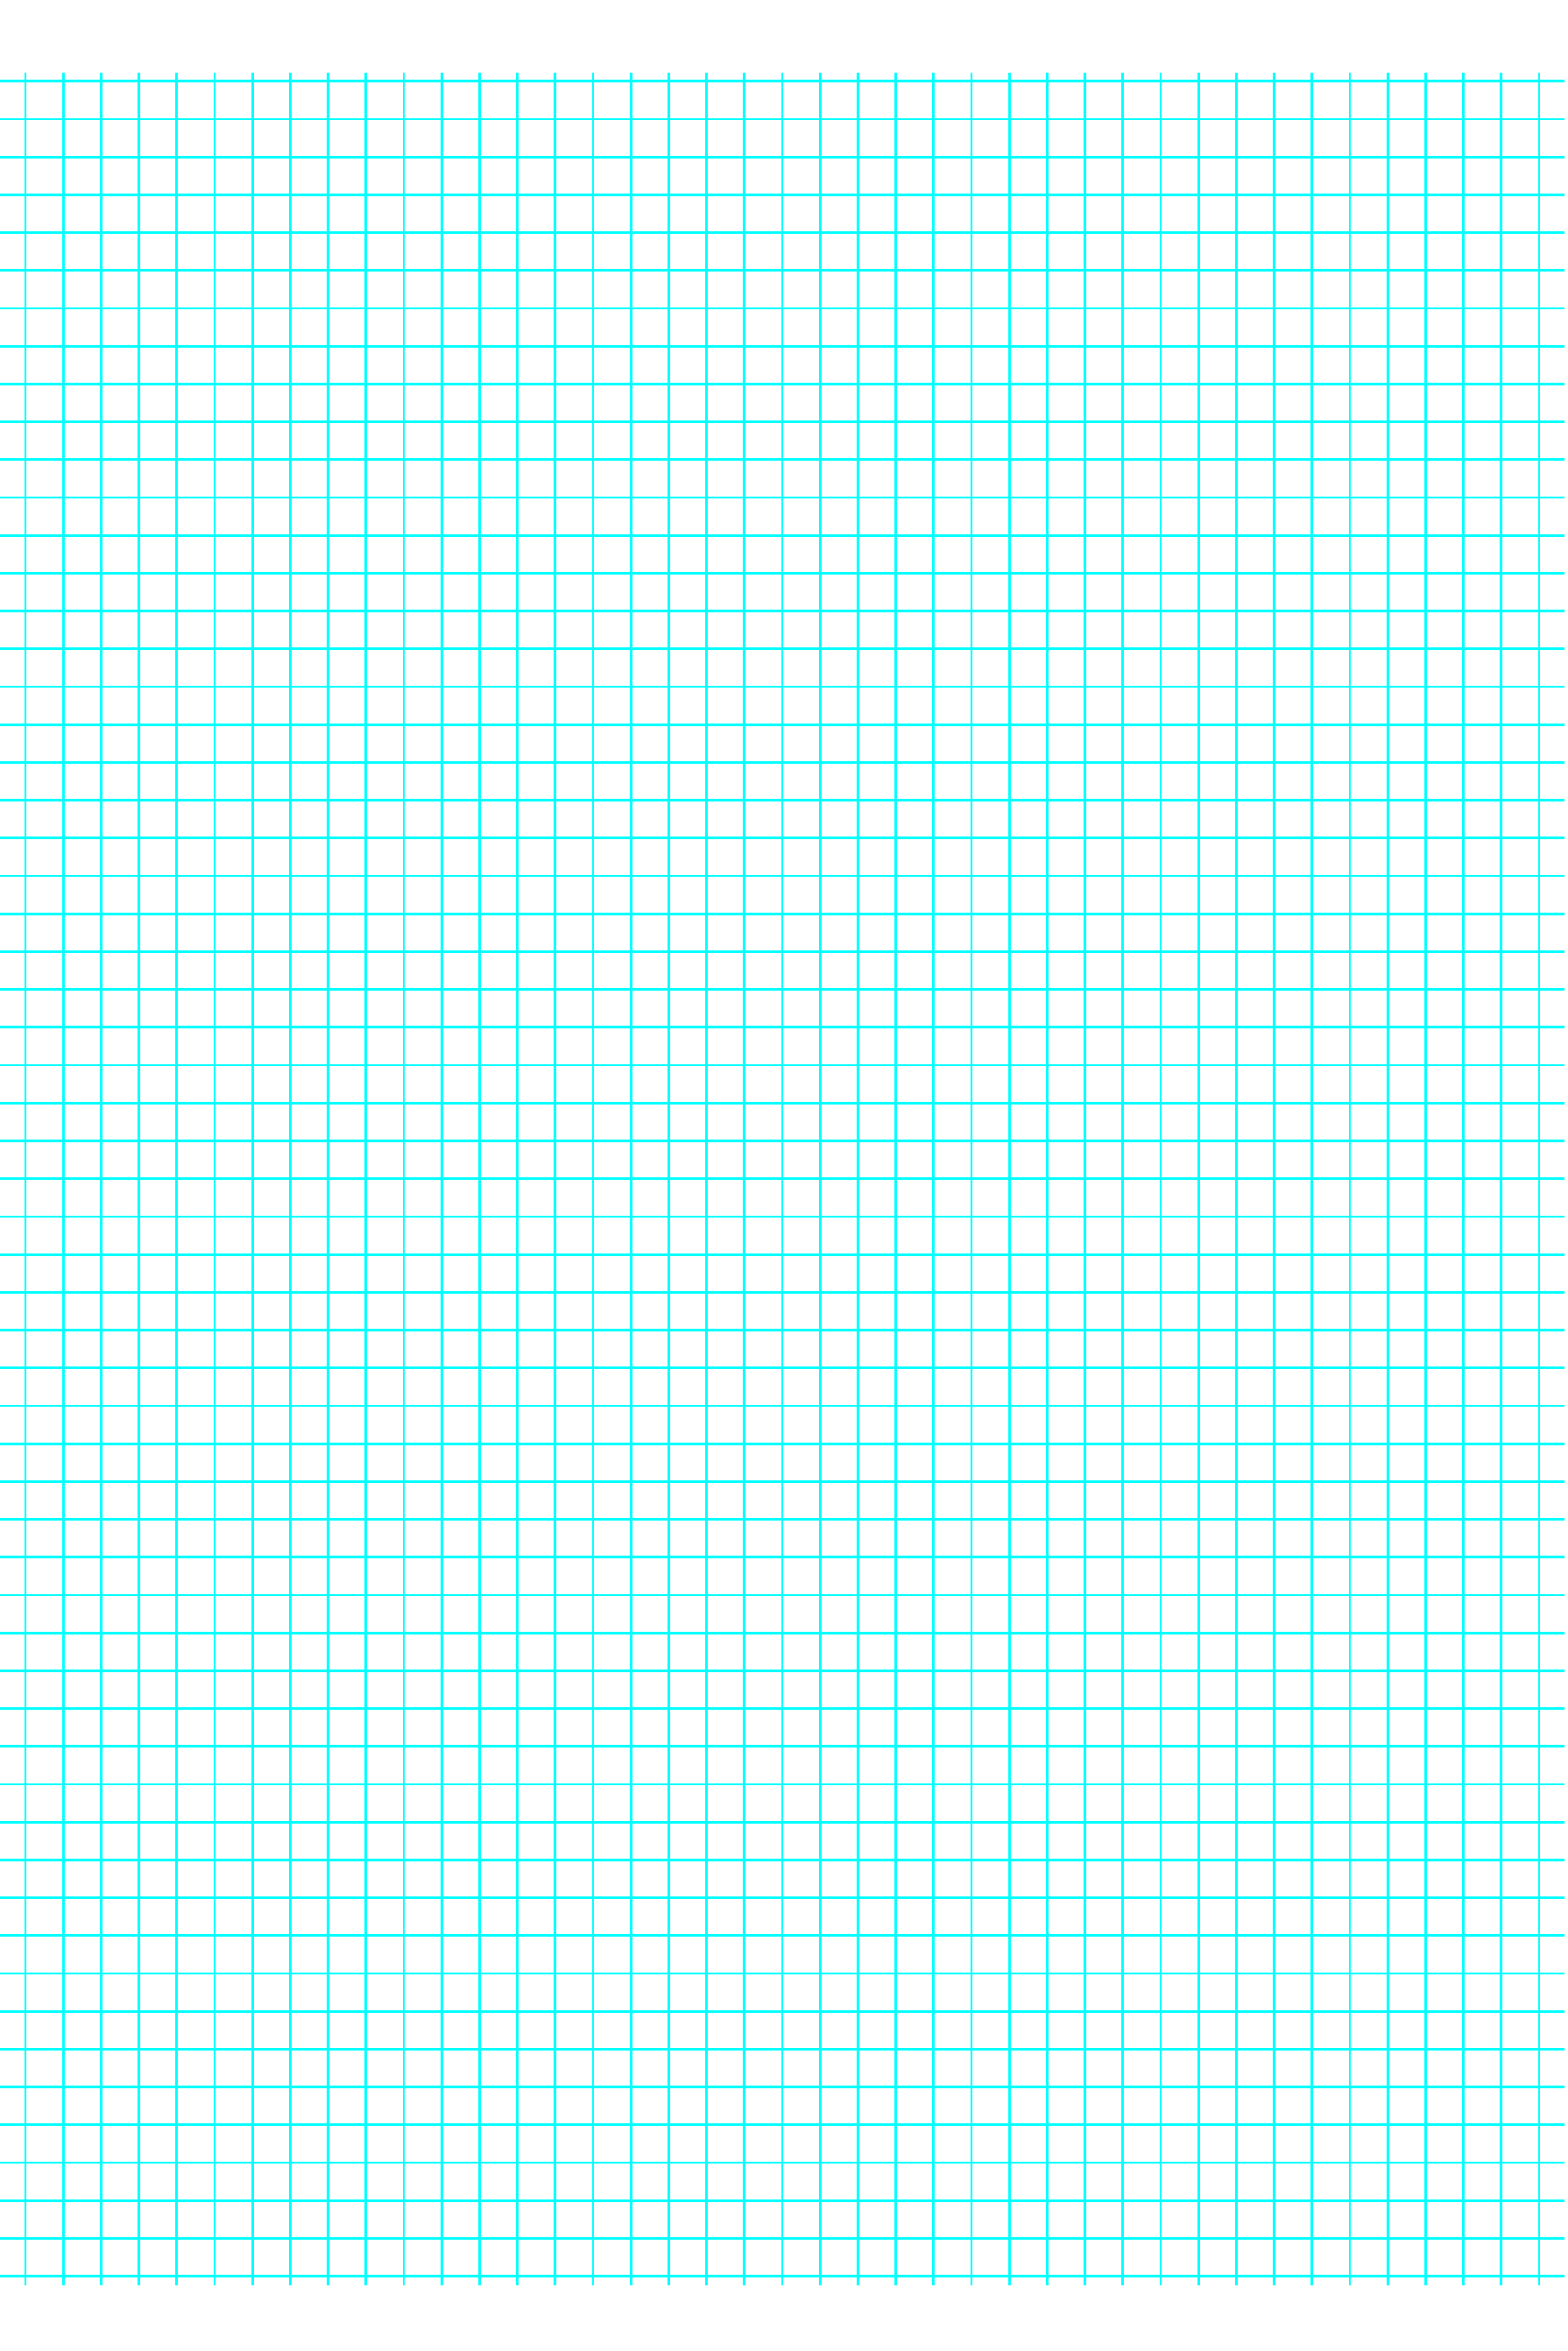 5 Lines Per Inch Graph Paper On A4 Sized Paper Free Download